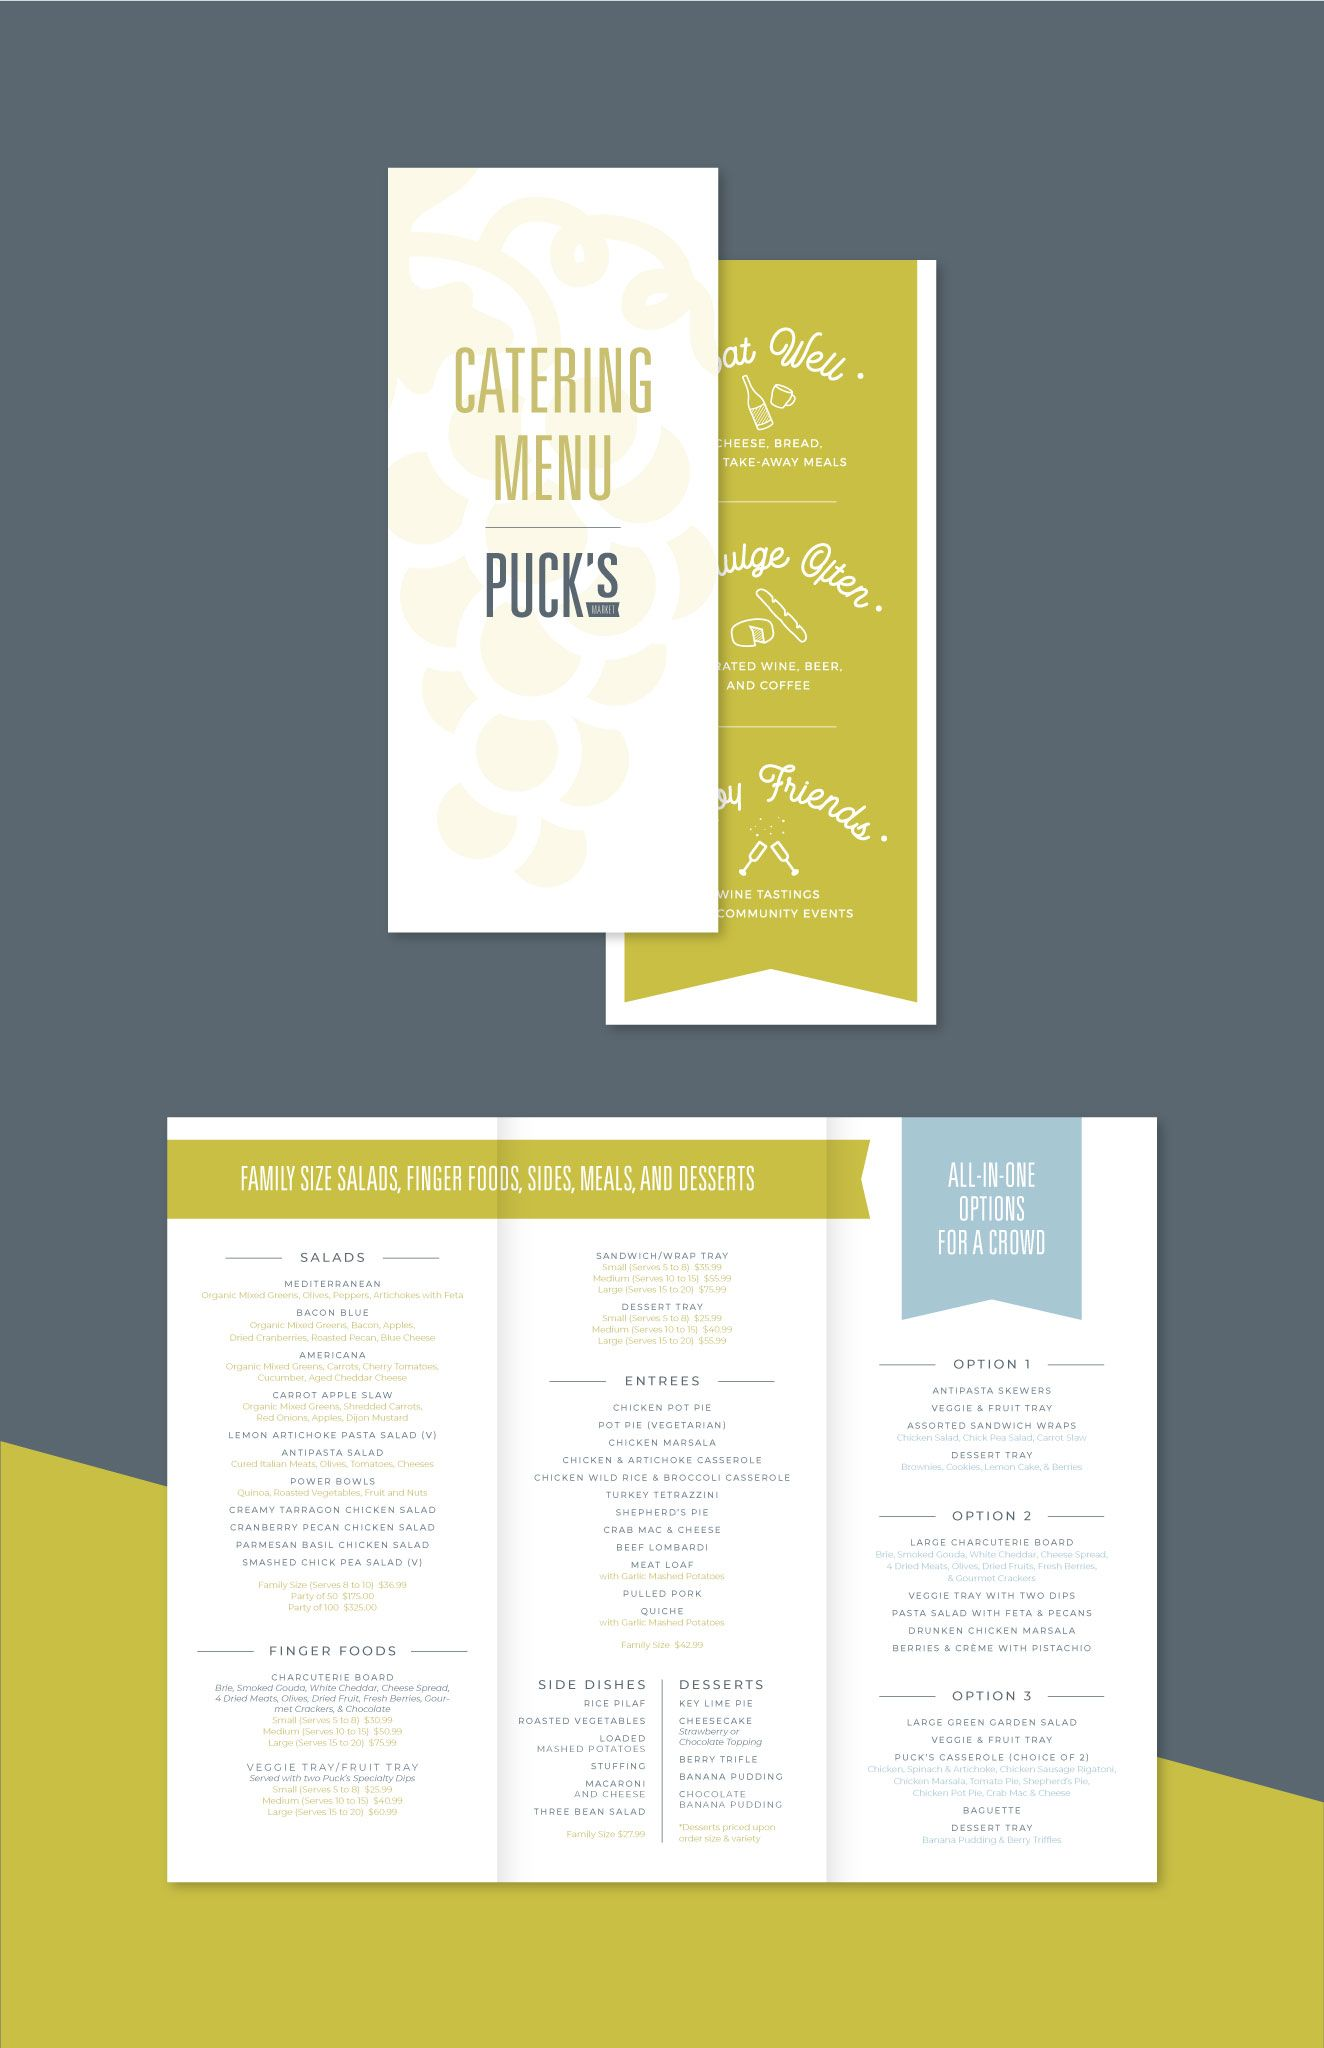 Puck's Market catering menu